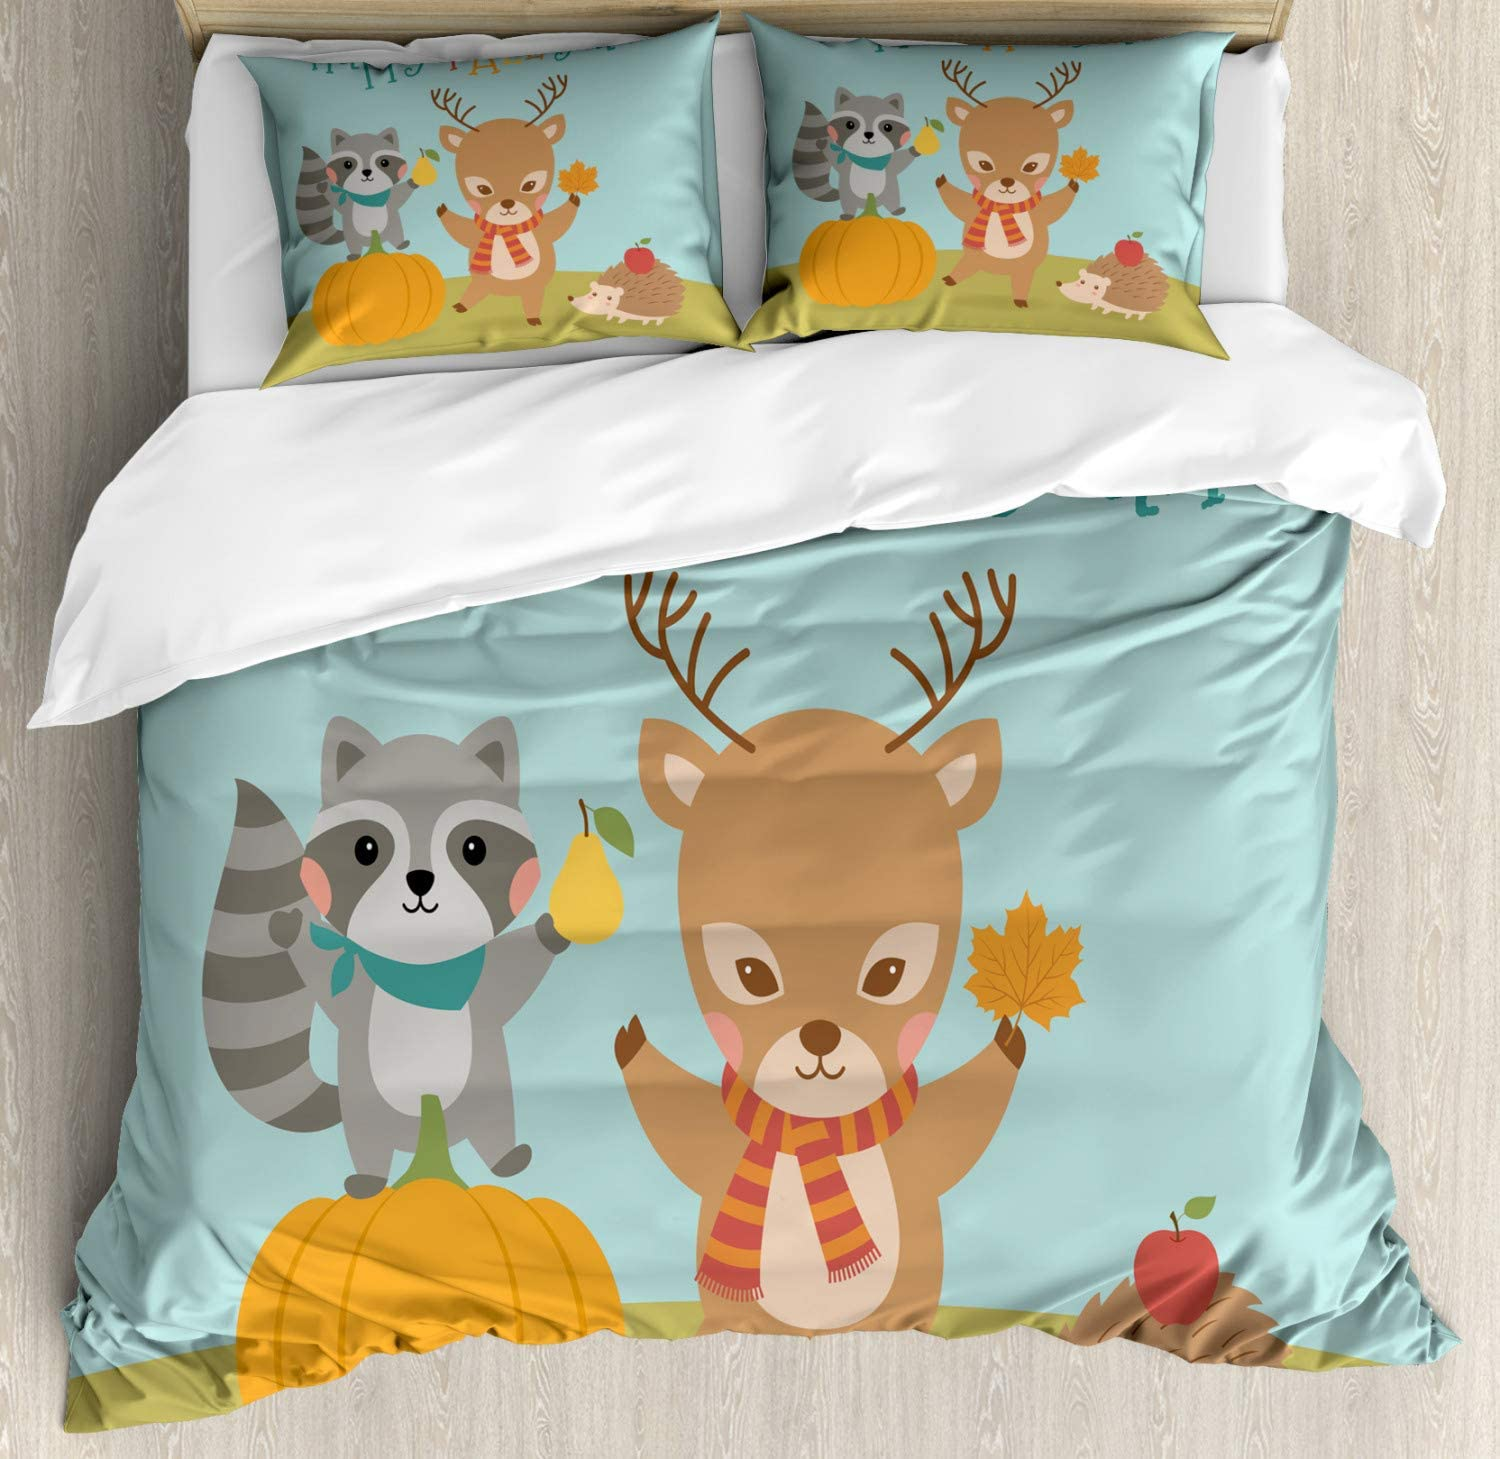 Amazon Com Lunarable Happy Fall Y All Duvet Cover Set Nursery Themed Cartoon With Happy Deer Raccoon And Hedgehog With Scarves Decorative 3 Piece Bedding Set With 2 Pillow Shams King Size Multicolor Home